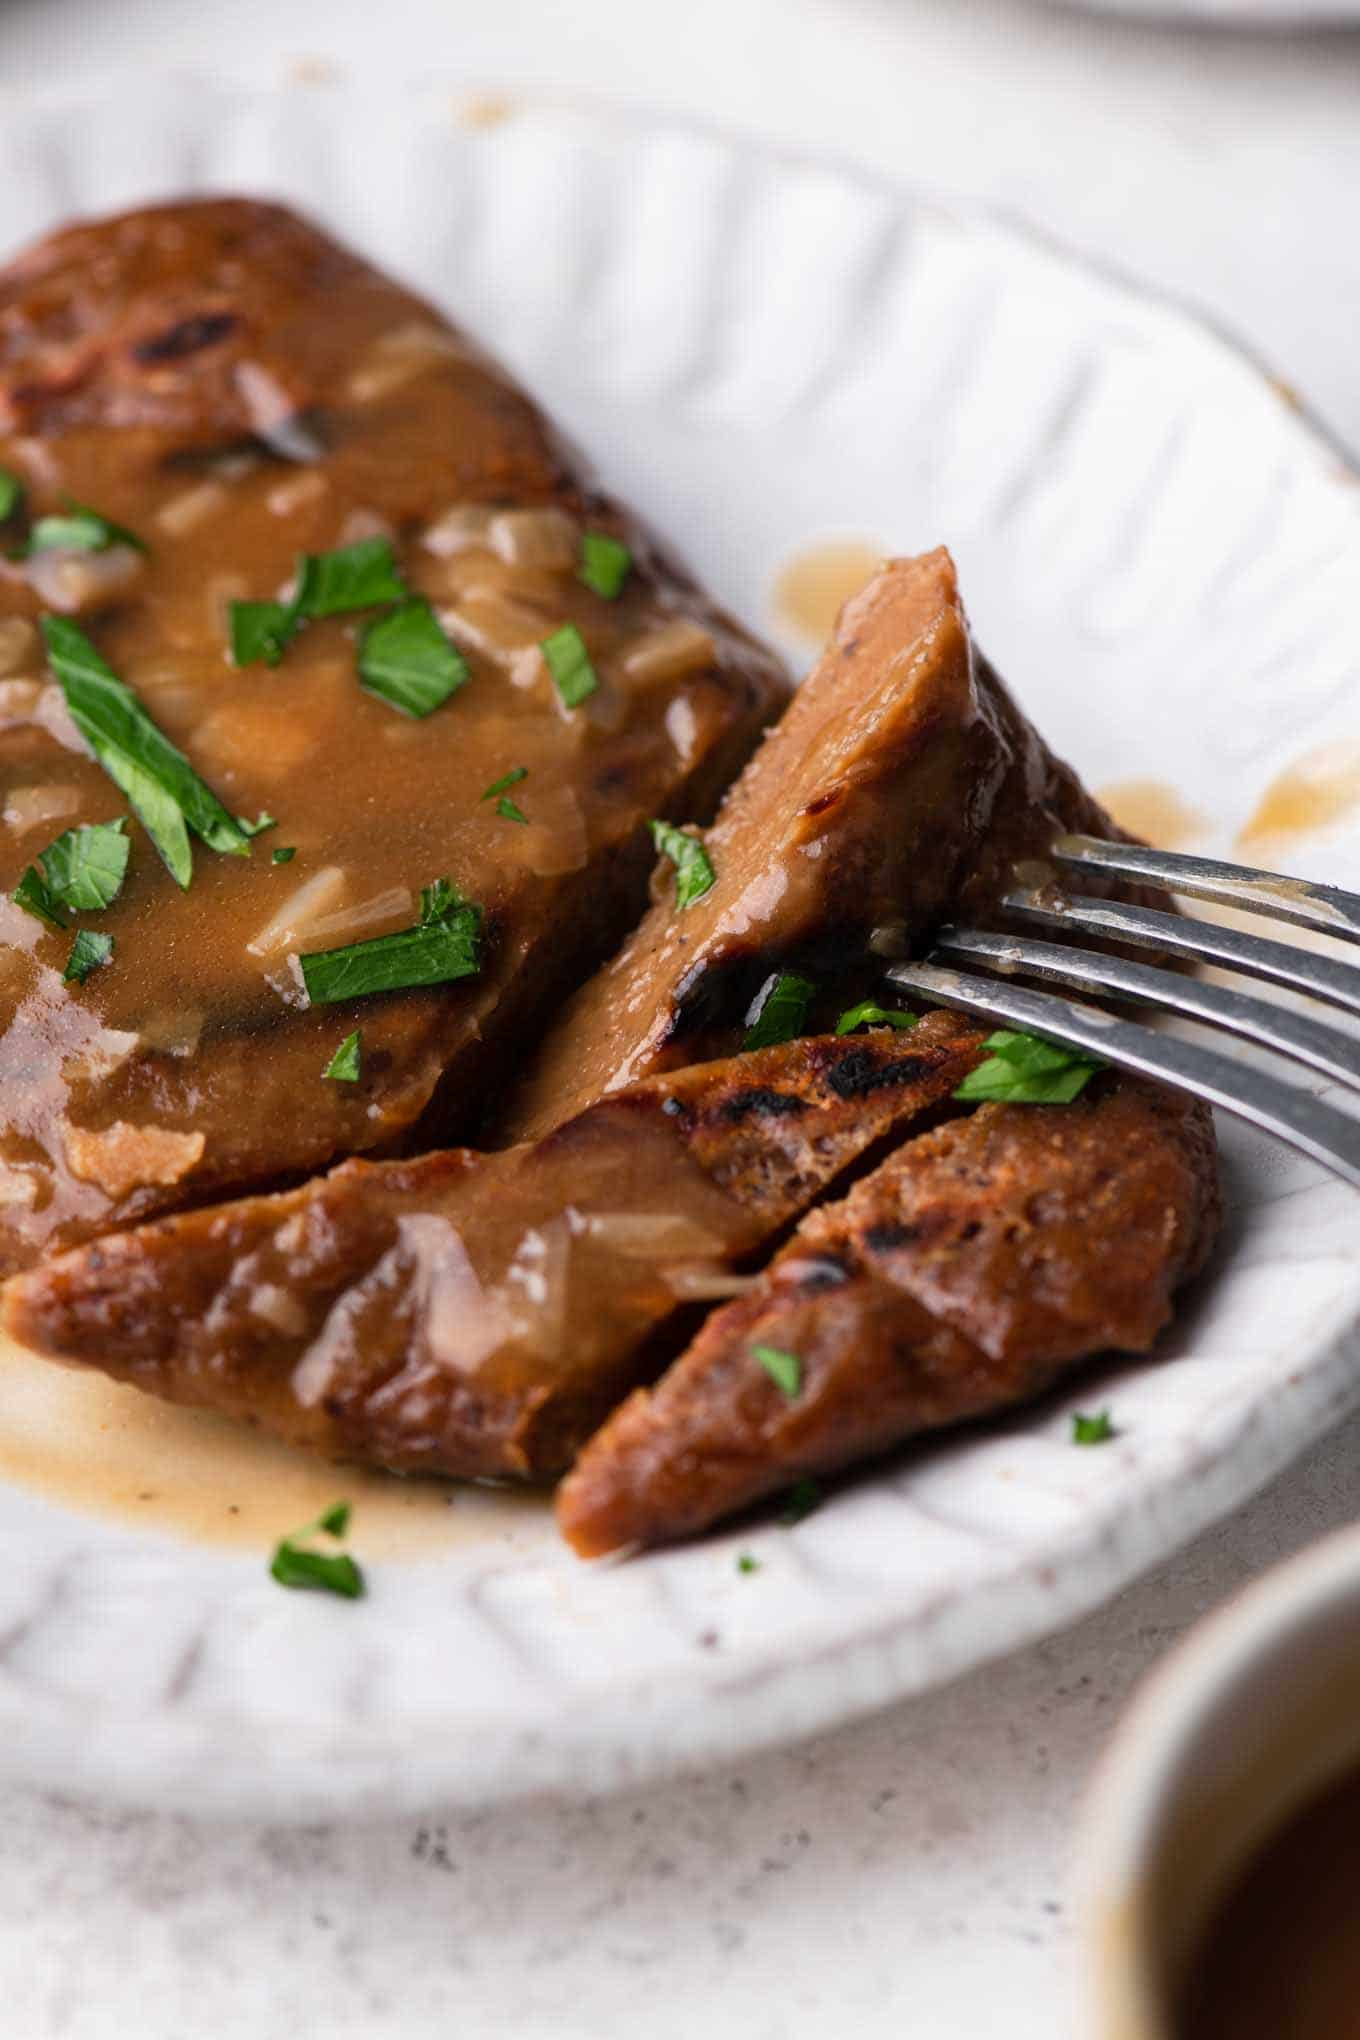 seitan steak topped with gravy and parsley with some bites cut and one on a fork